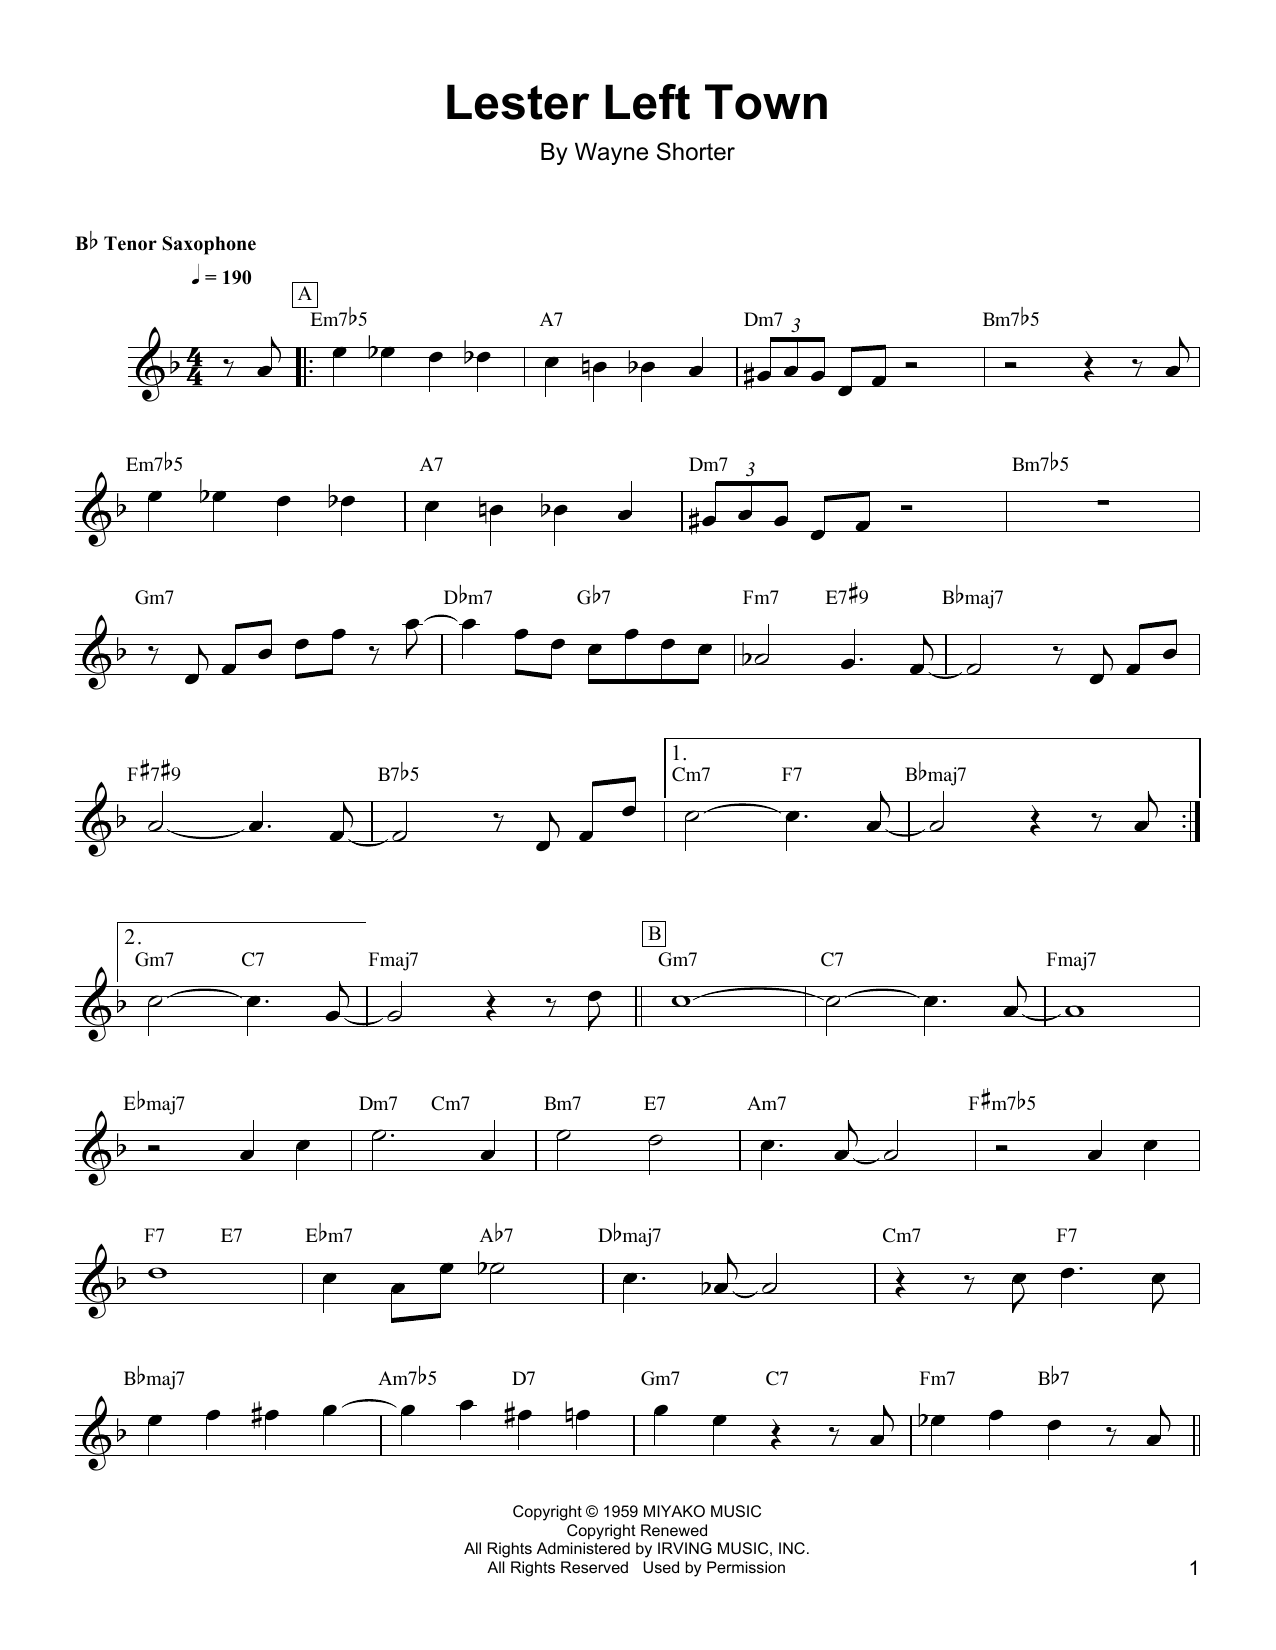 Download Wayne Shorter 'Lester Left Town' Digital Sheet Music Notes & Chords and start playing in minutes